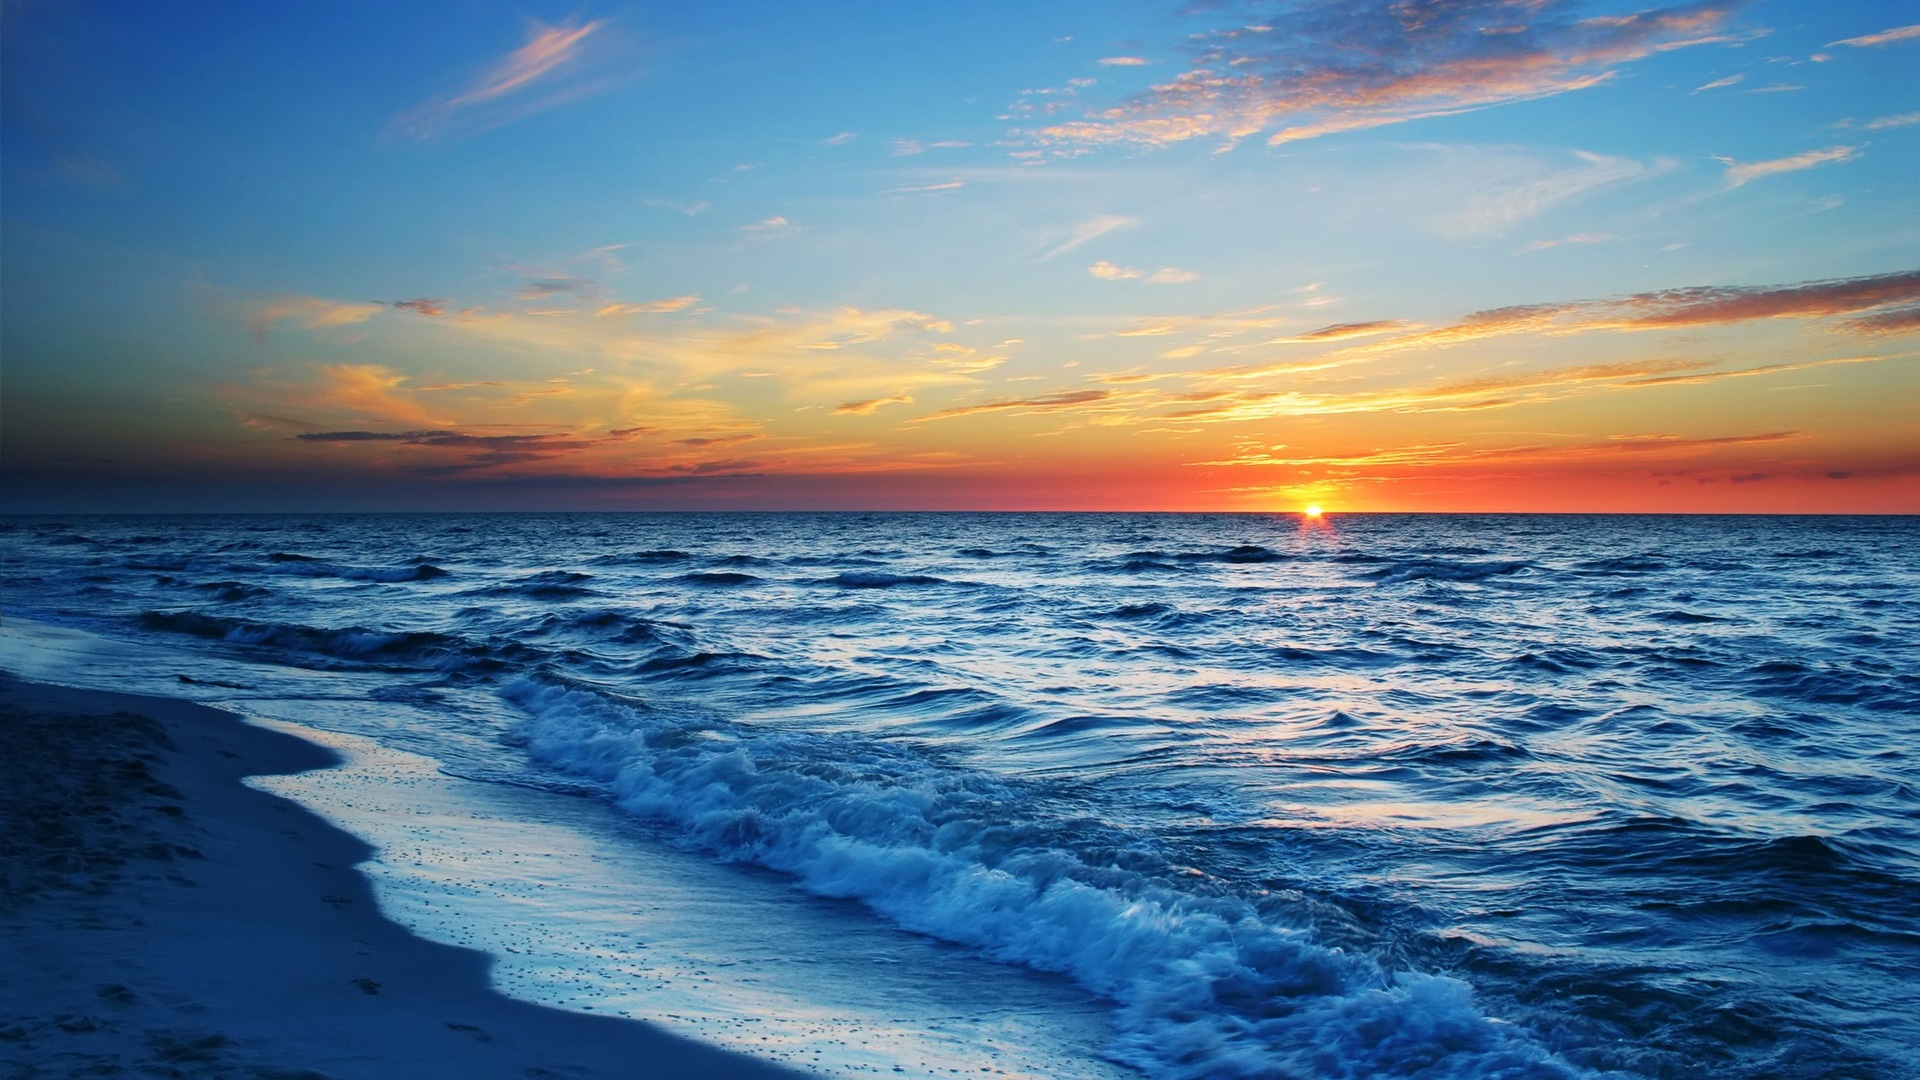 Sunset-sea-beach-waves-blue-orange-sky_1920x1080